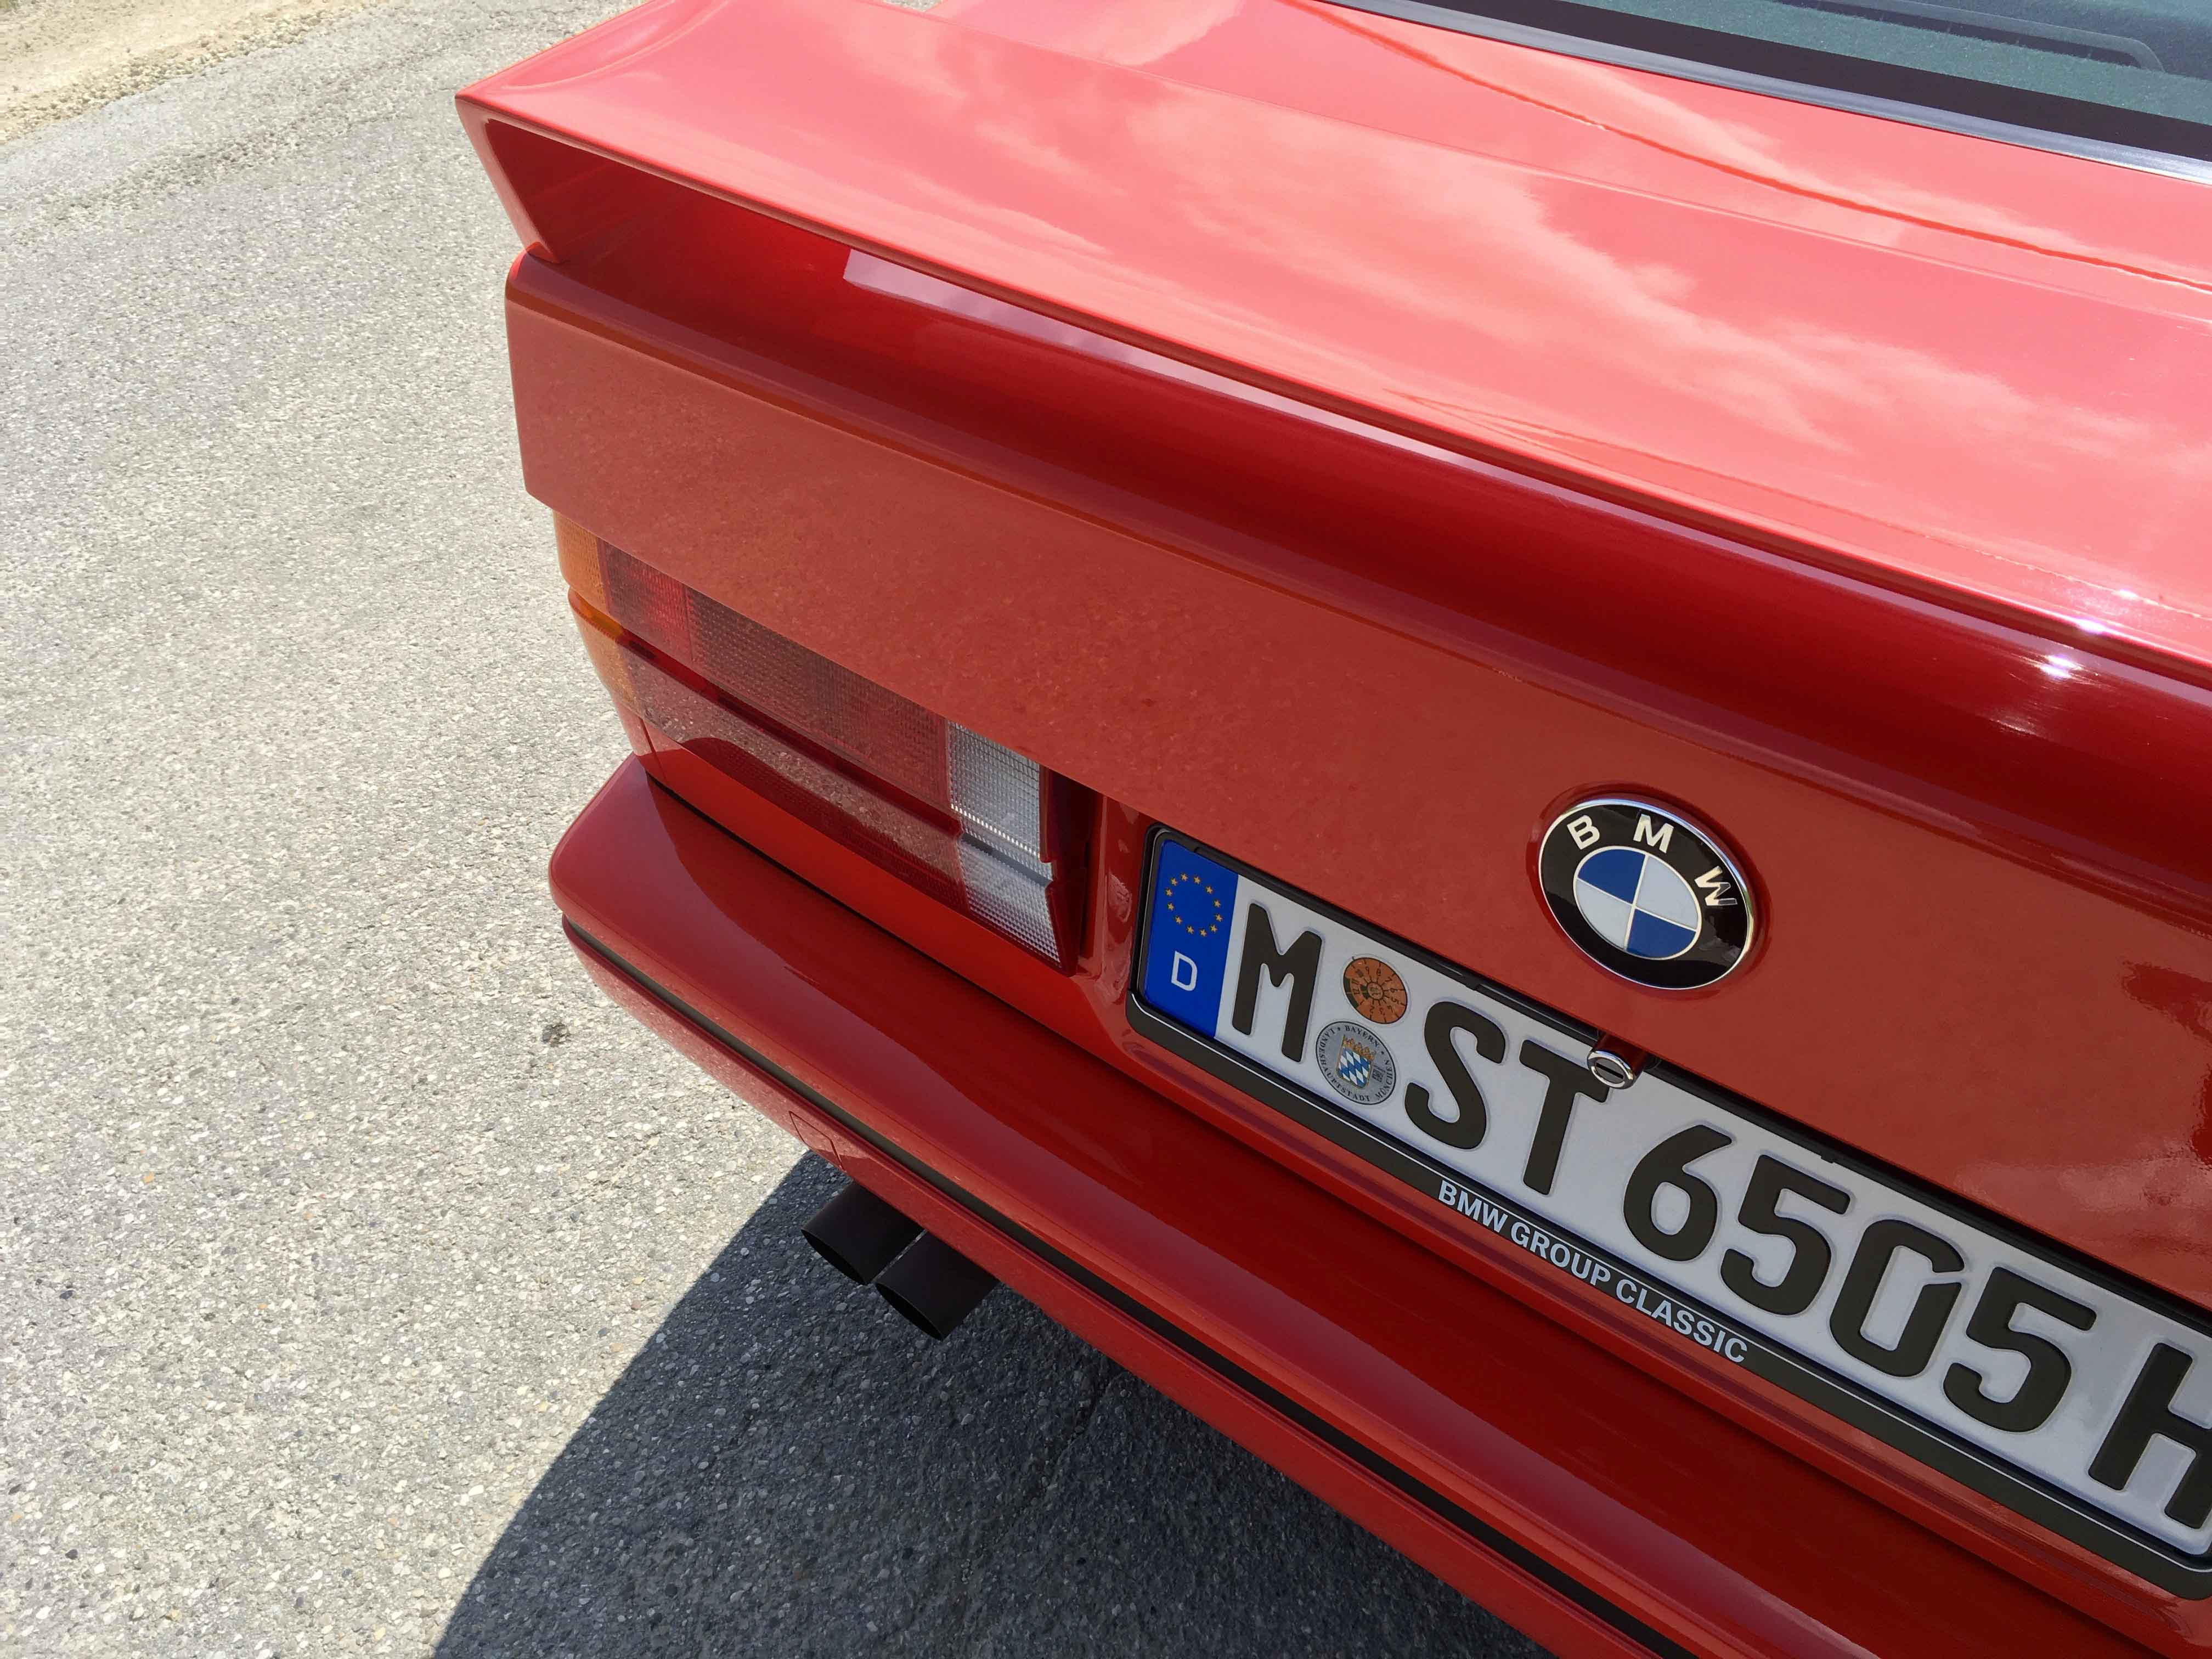 1987 BMW M3 License plate and badge